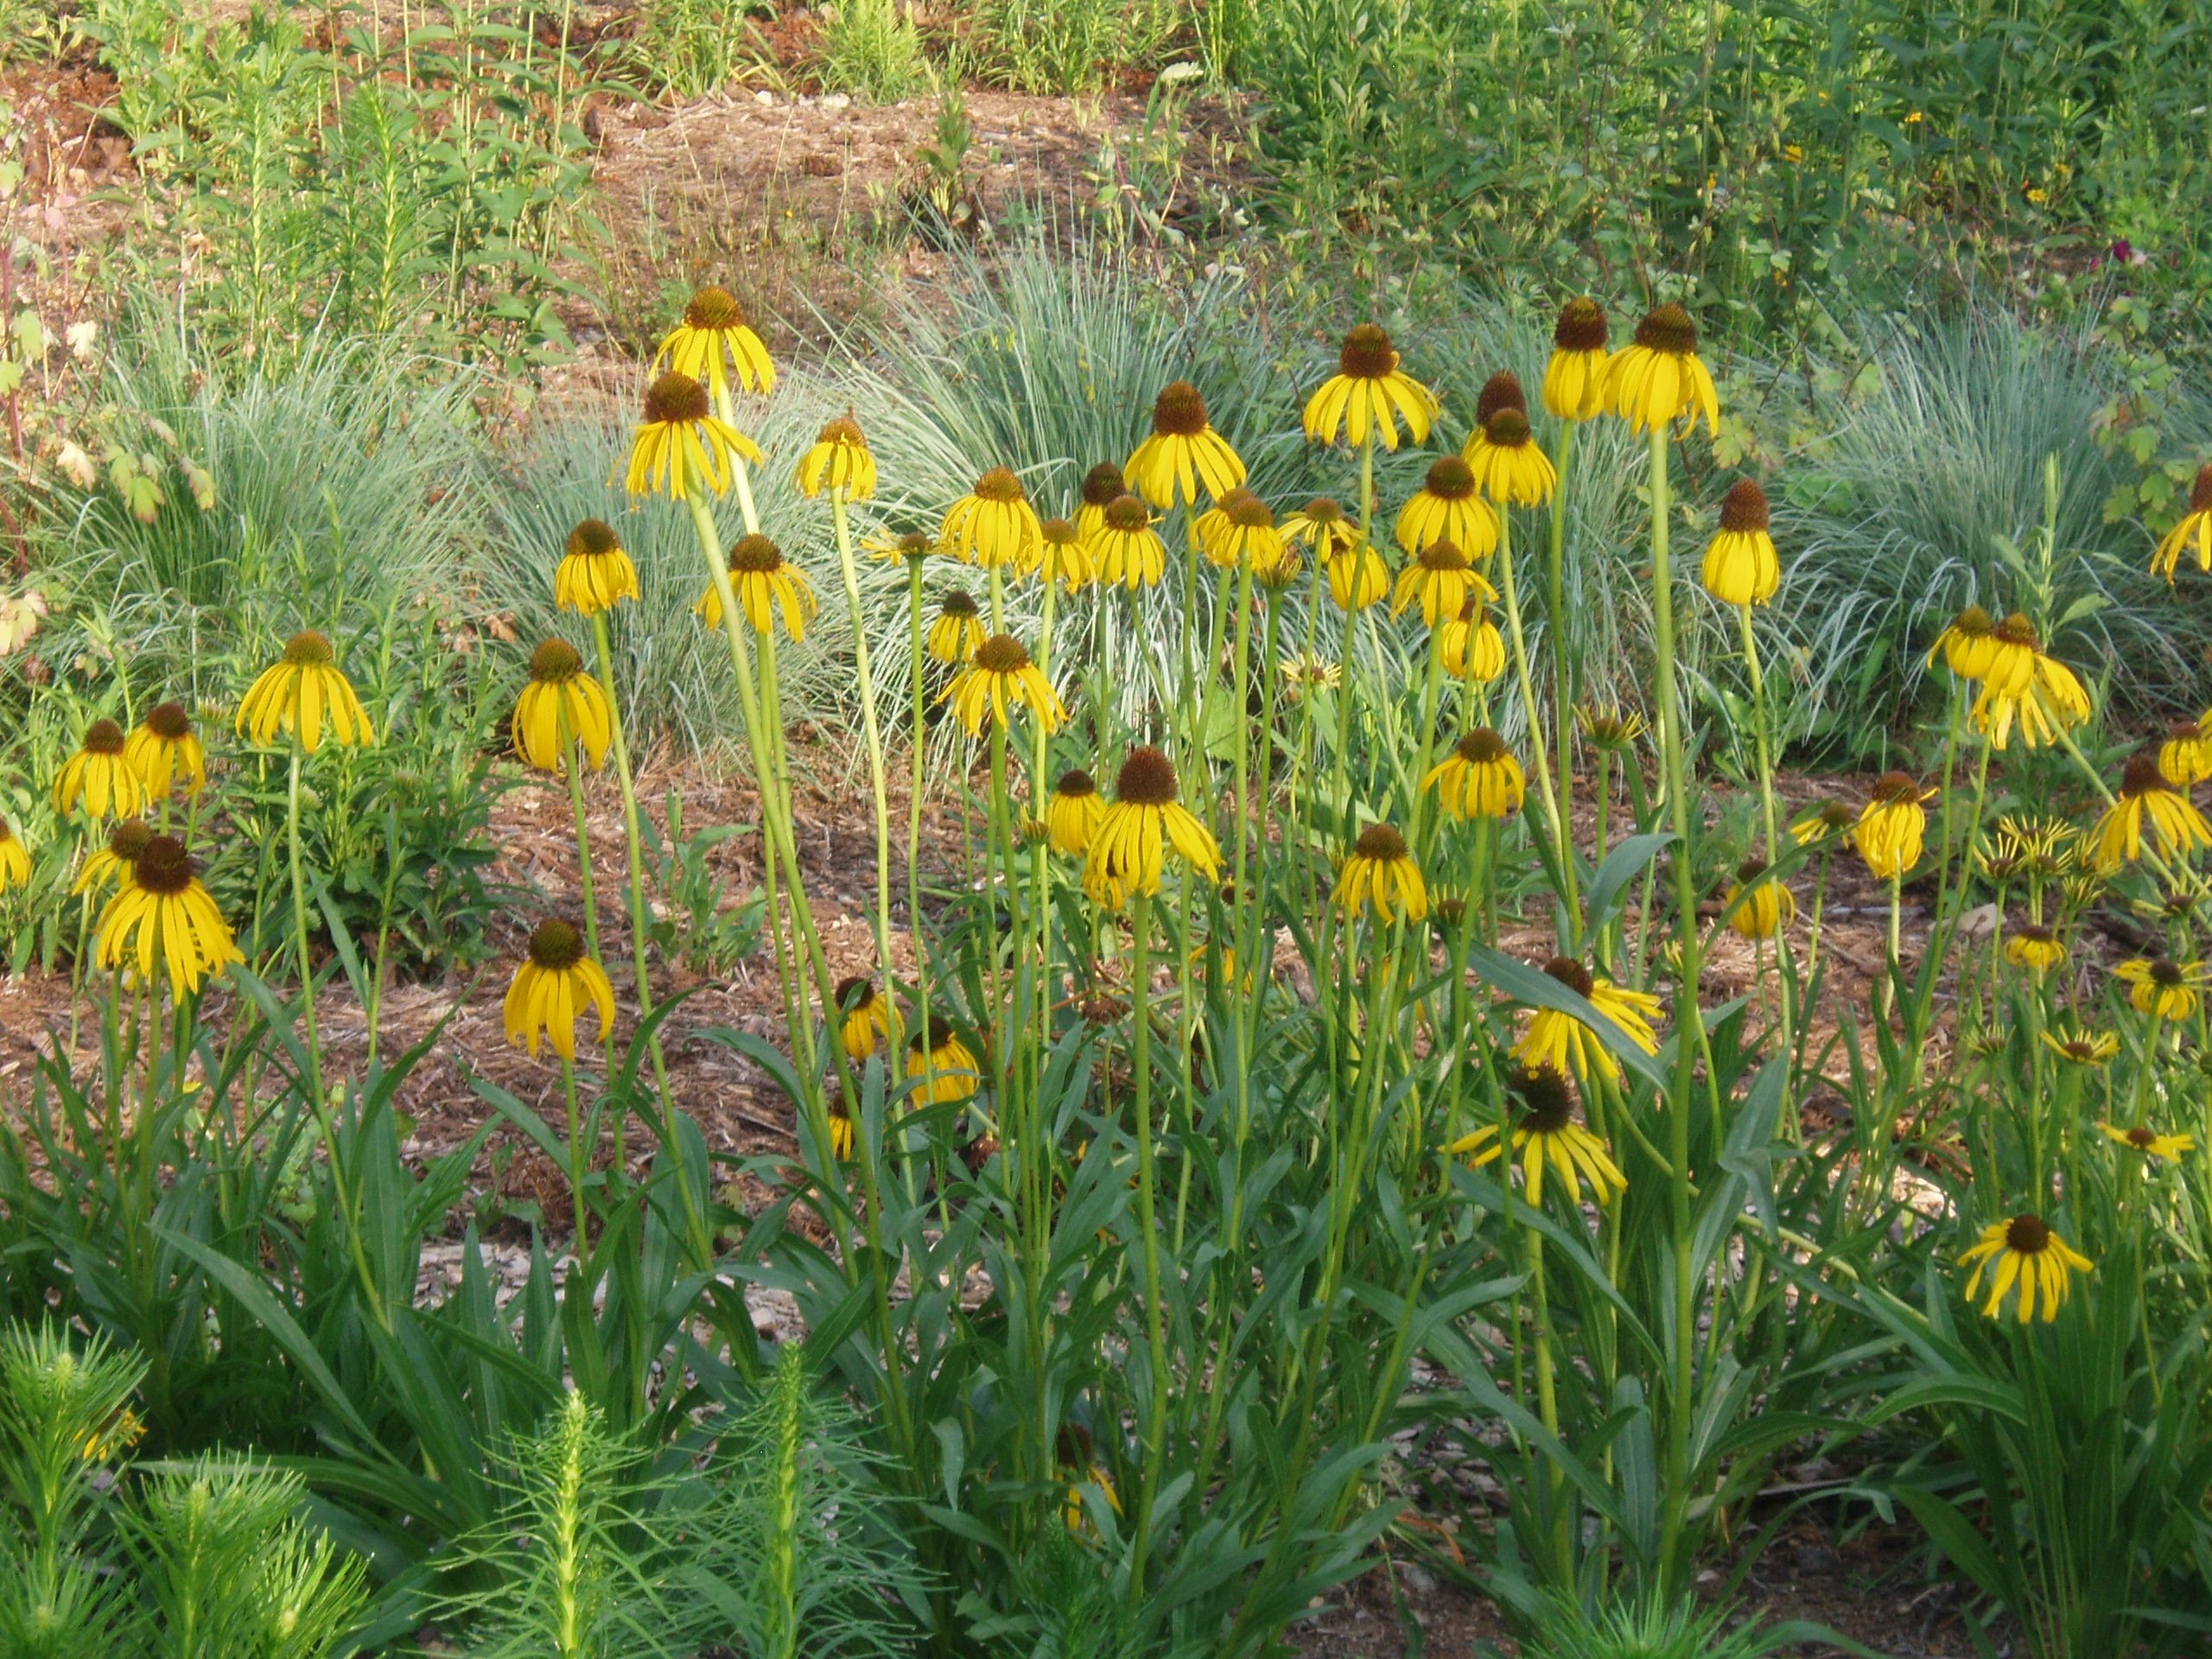 "{""blocks"":[{""key"":""1h6p8"",""text"":""photo Echinacea paradoxa Yellow Coneflower -  potted plants email john@easywildflowers.com \t"",""type"":""unstyled"",""depth"":0,""inlineStyleRanges"":[],""entityRanges"":[],""data"":{}}],""entityMap"":{}}"